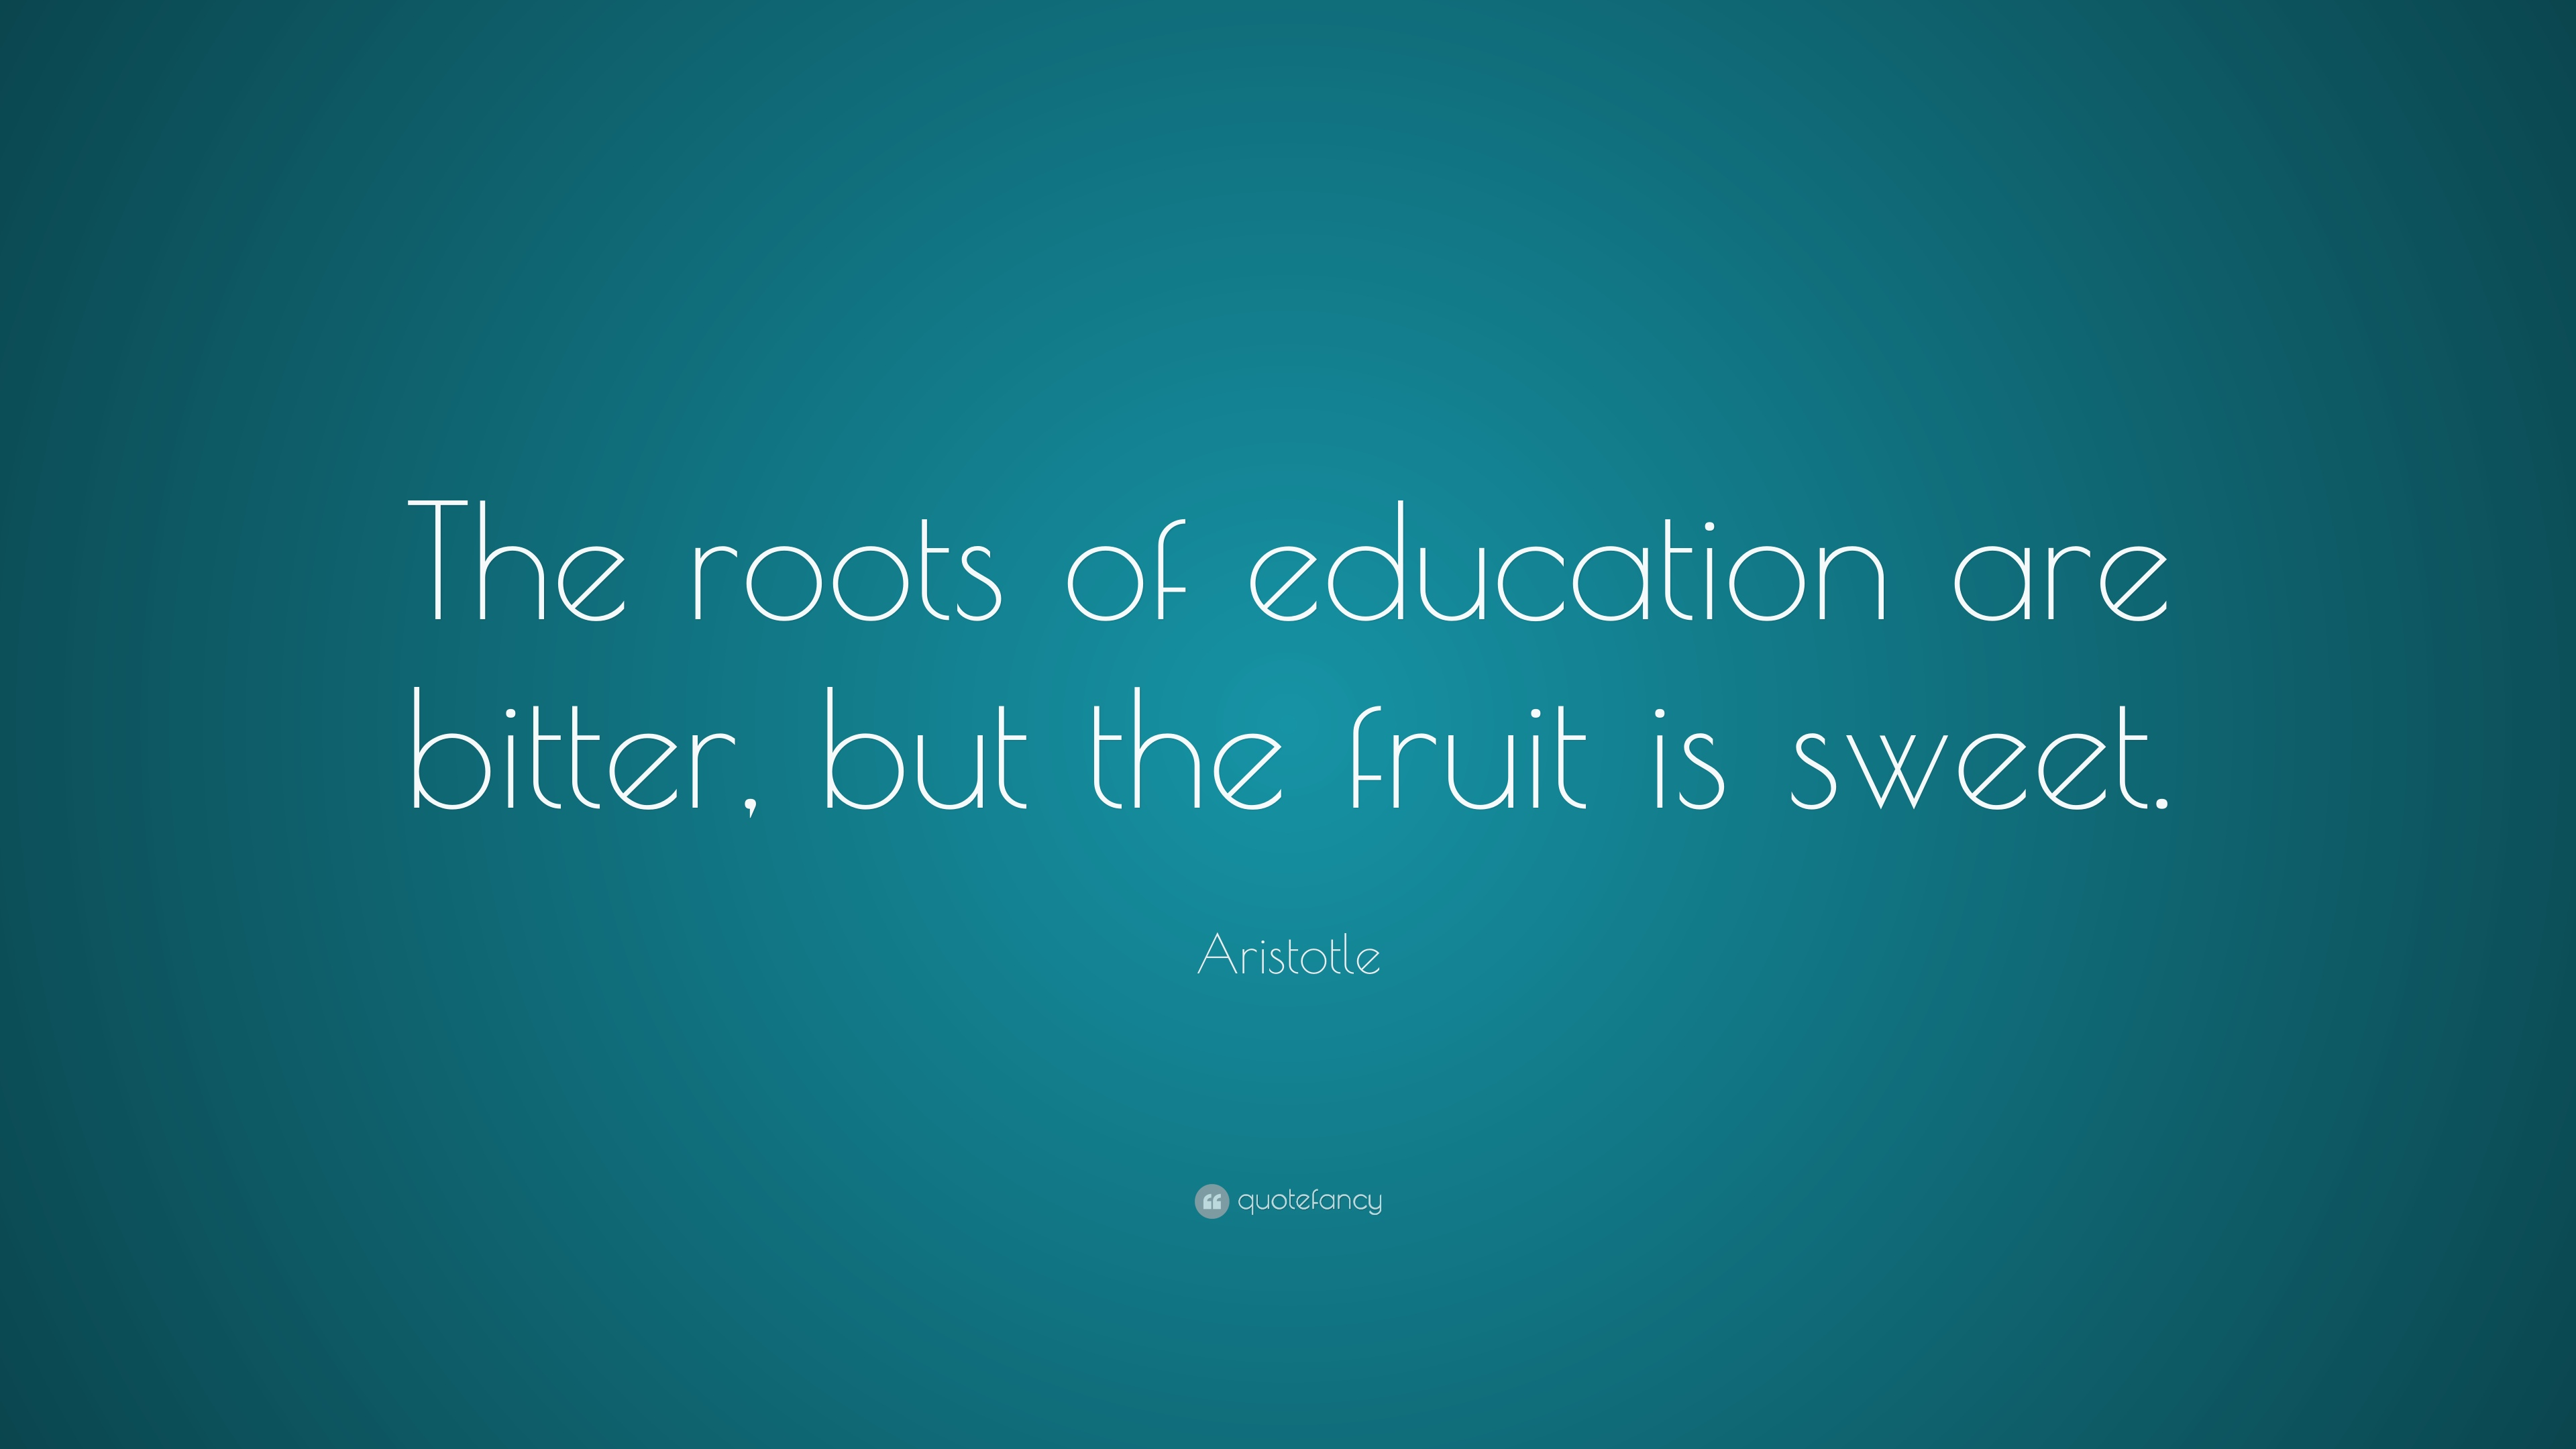 education quotes wallpapers - photo #24